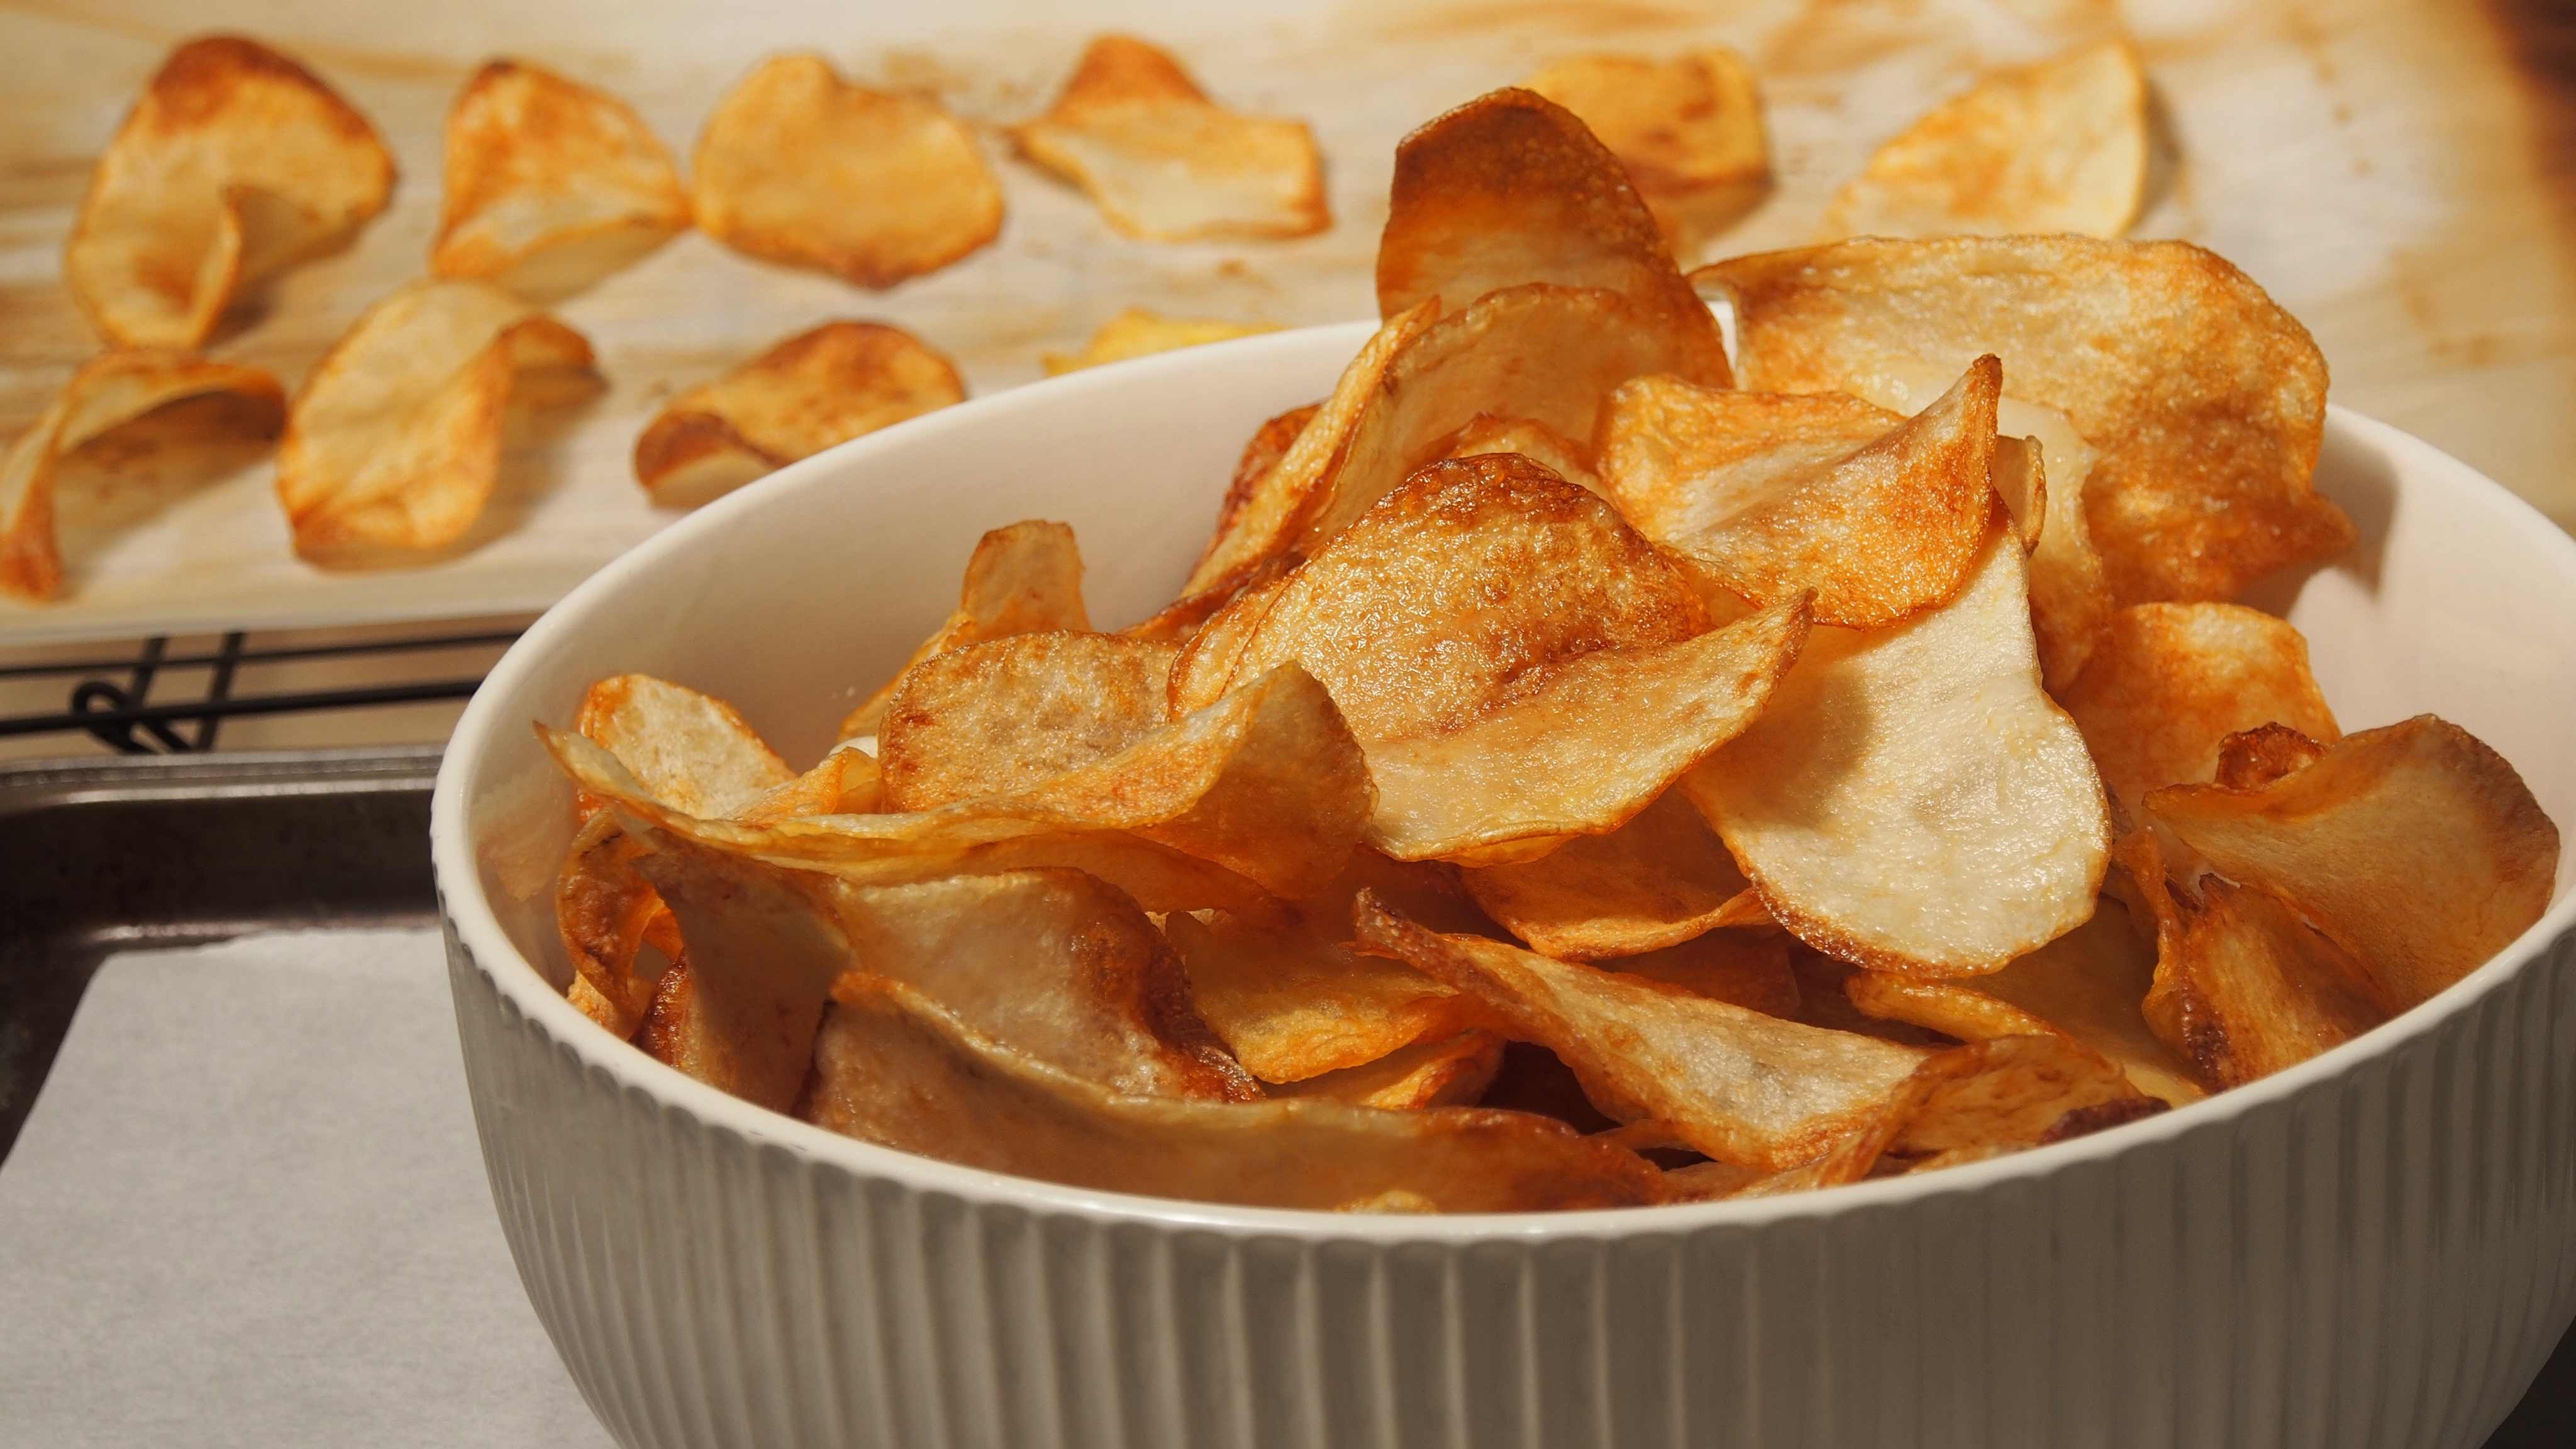 The Exceptional Food for Every Mood: Crispy Chips